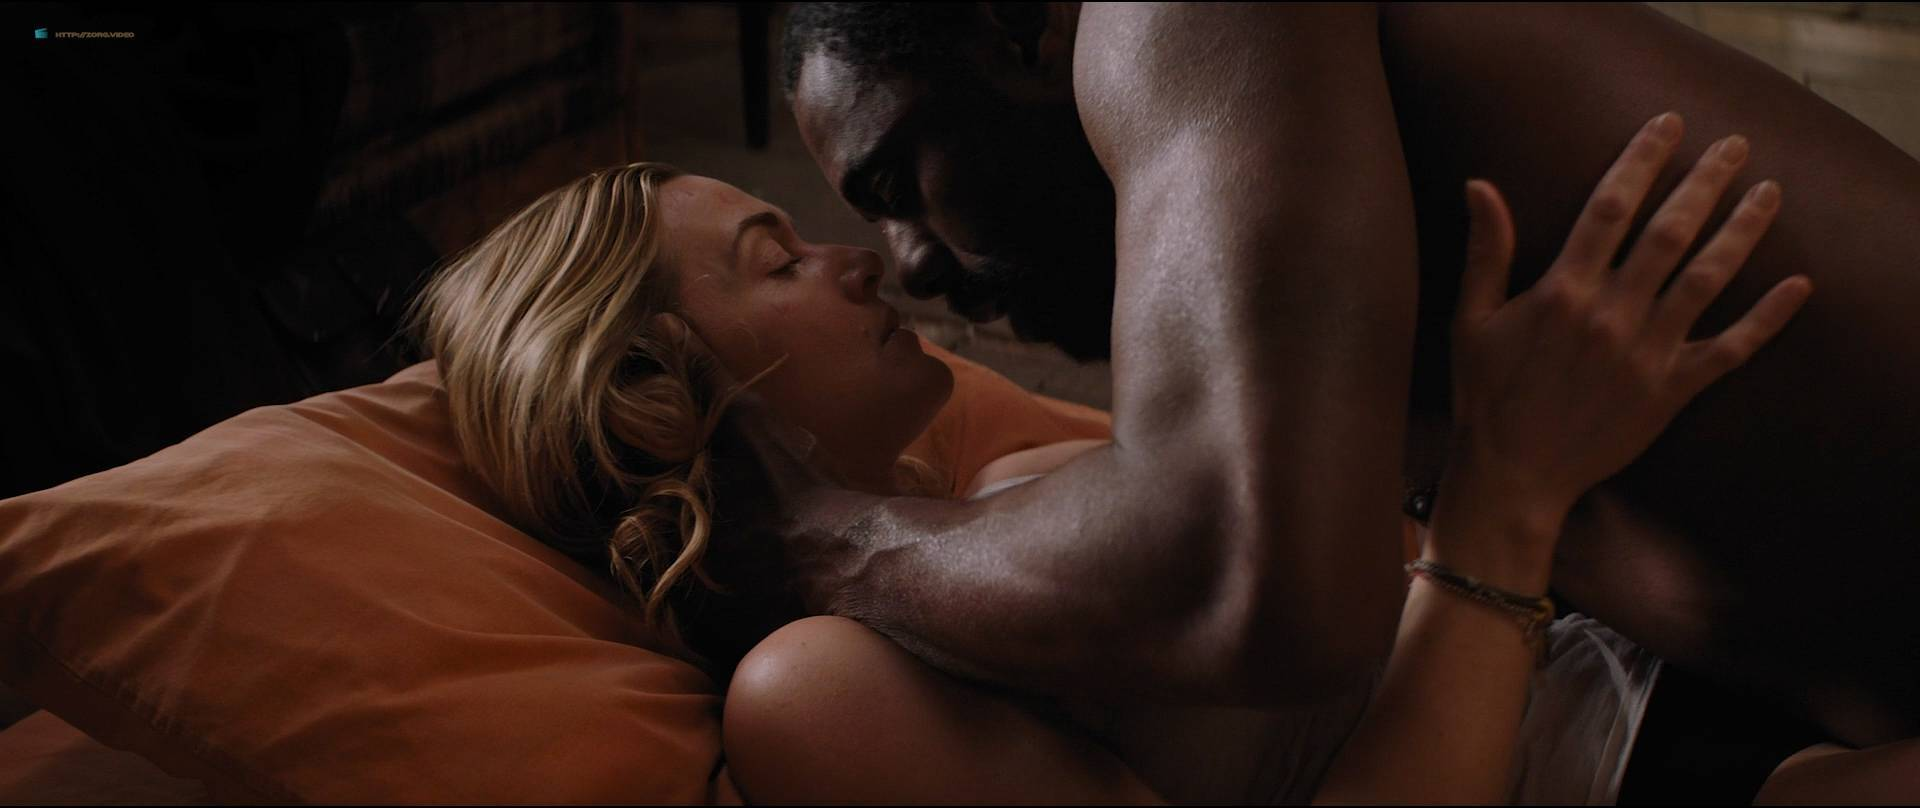 Movie sex scene ray allen